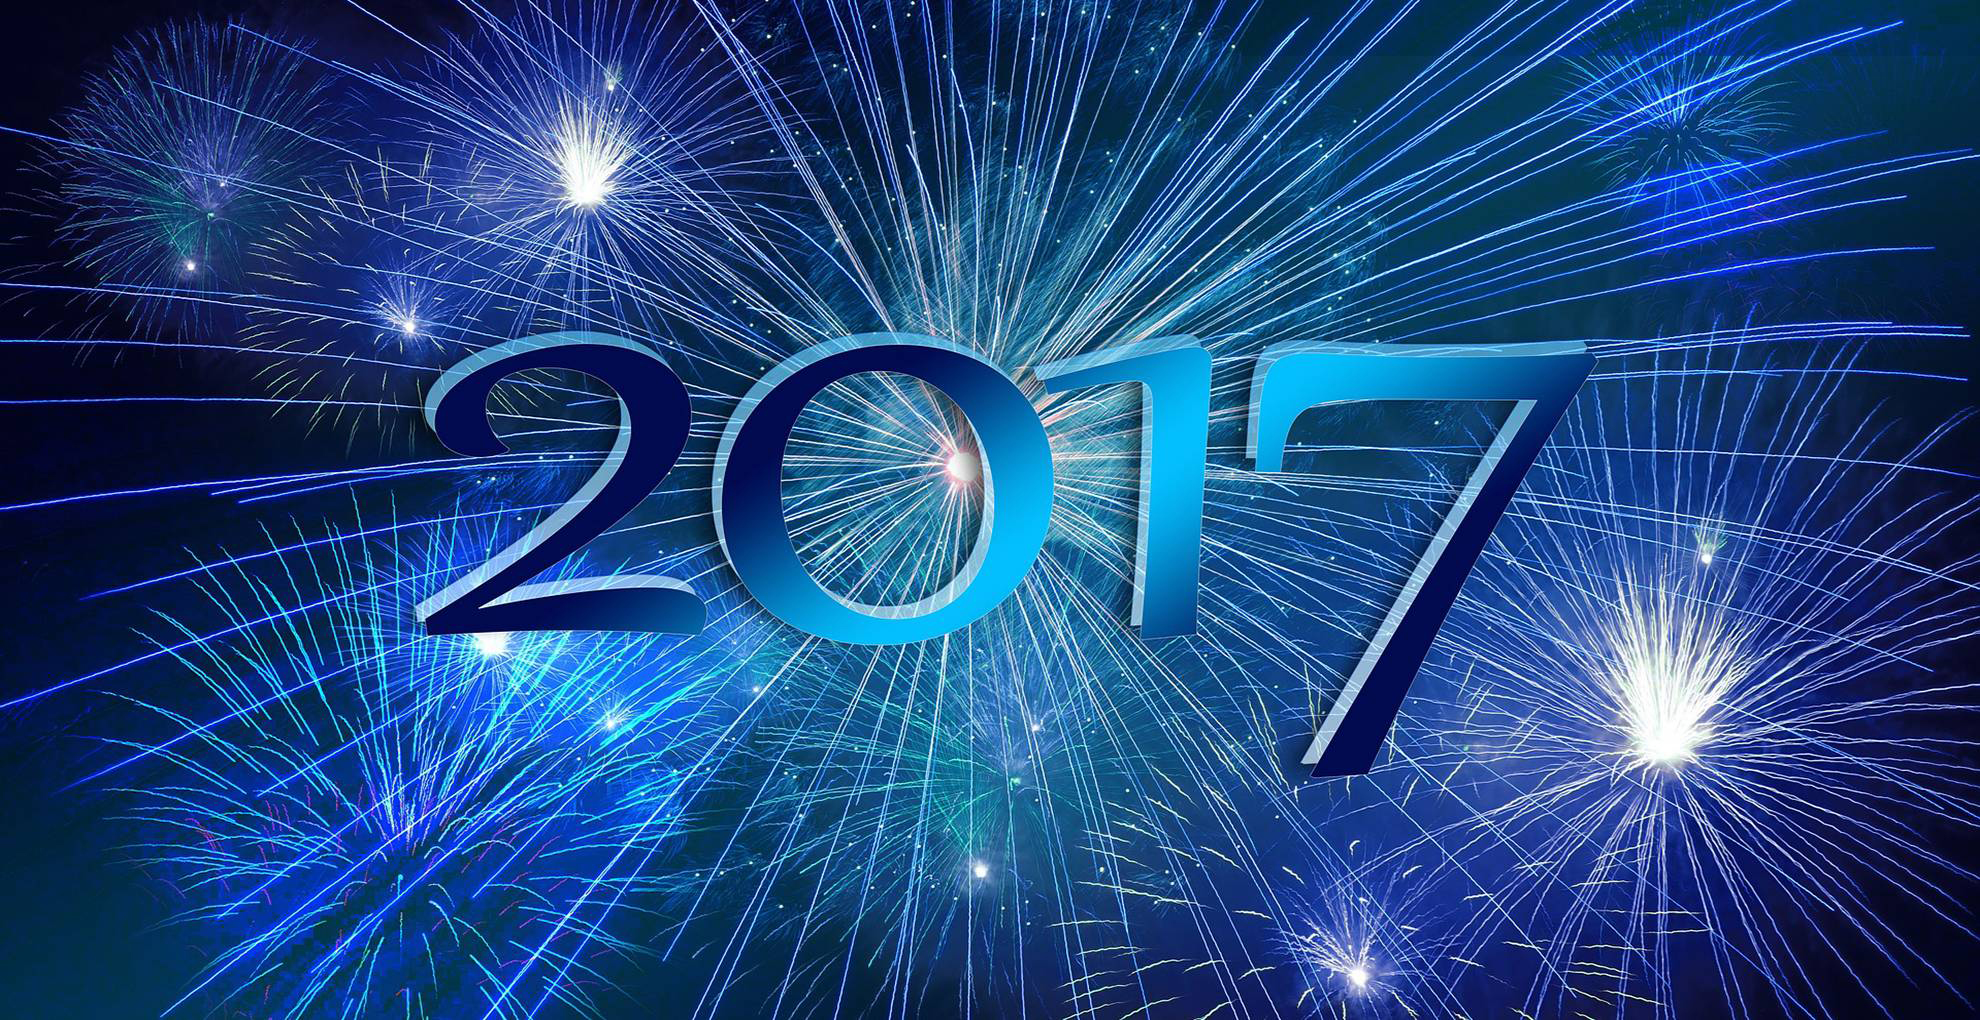 New Year's Eve Roundup: Your options for ringing in 2017